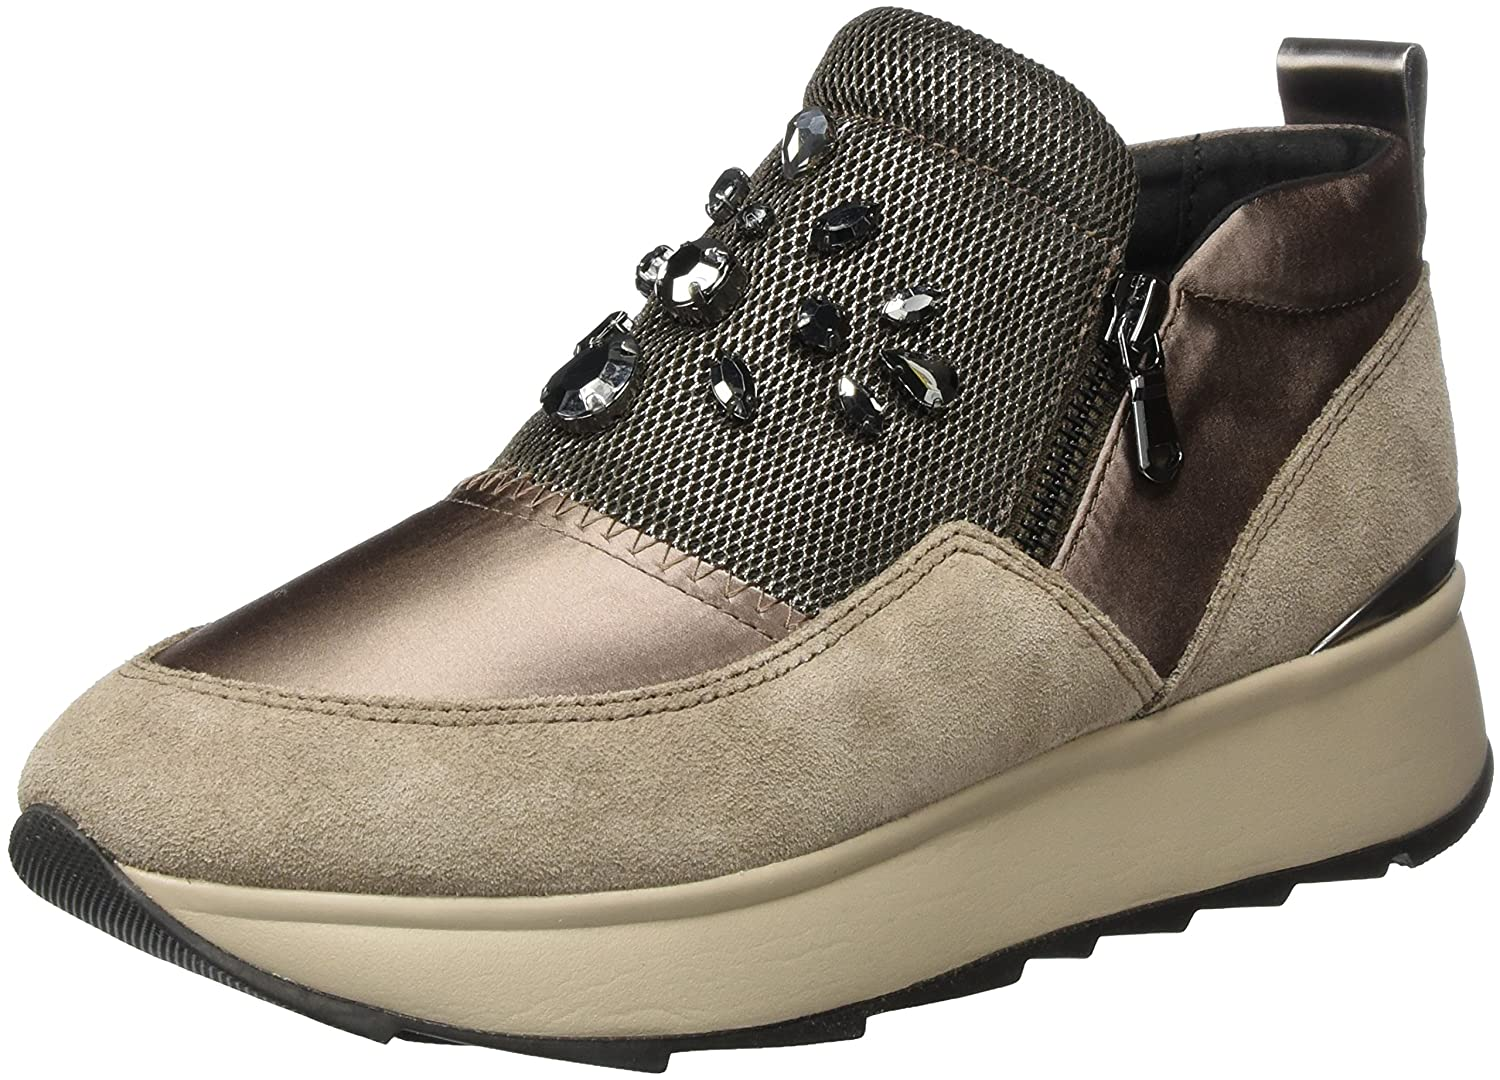 Geox D Gendry B amazon-shoes Pelle